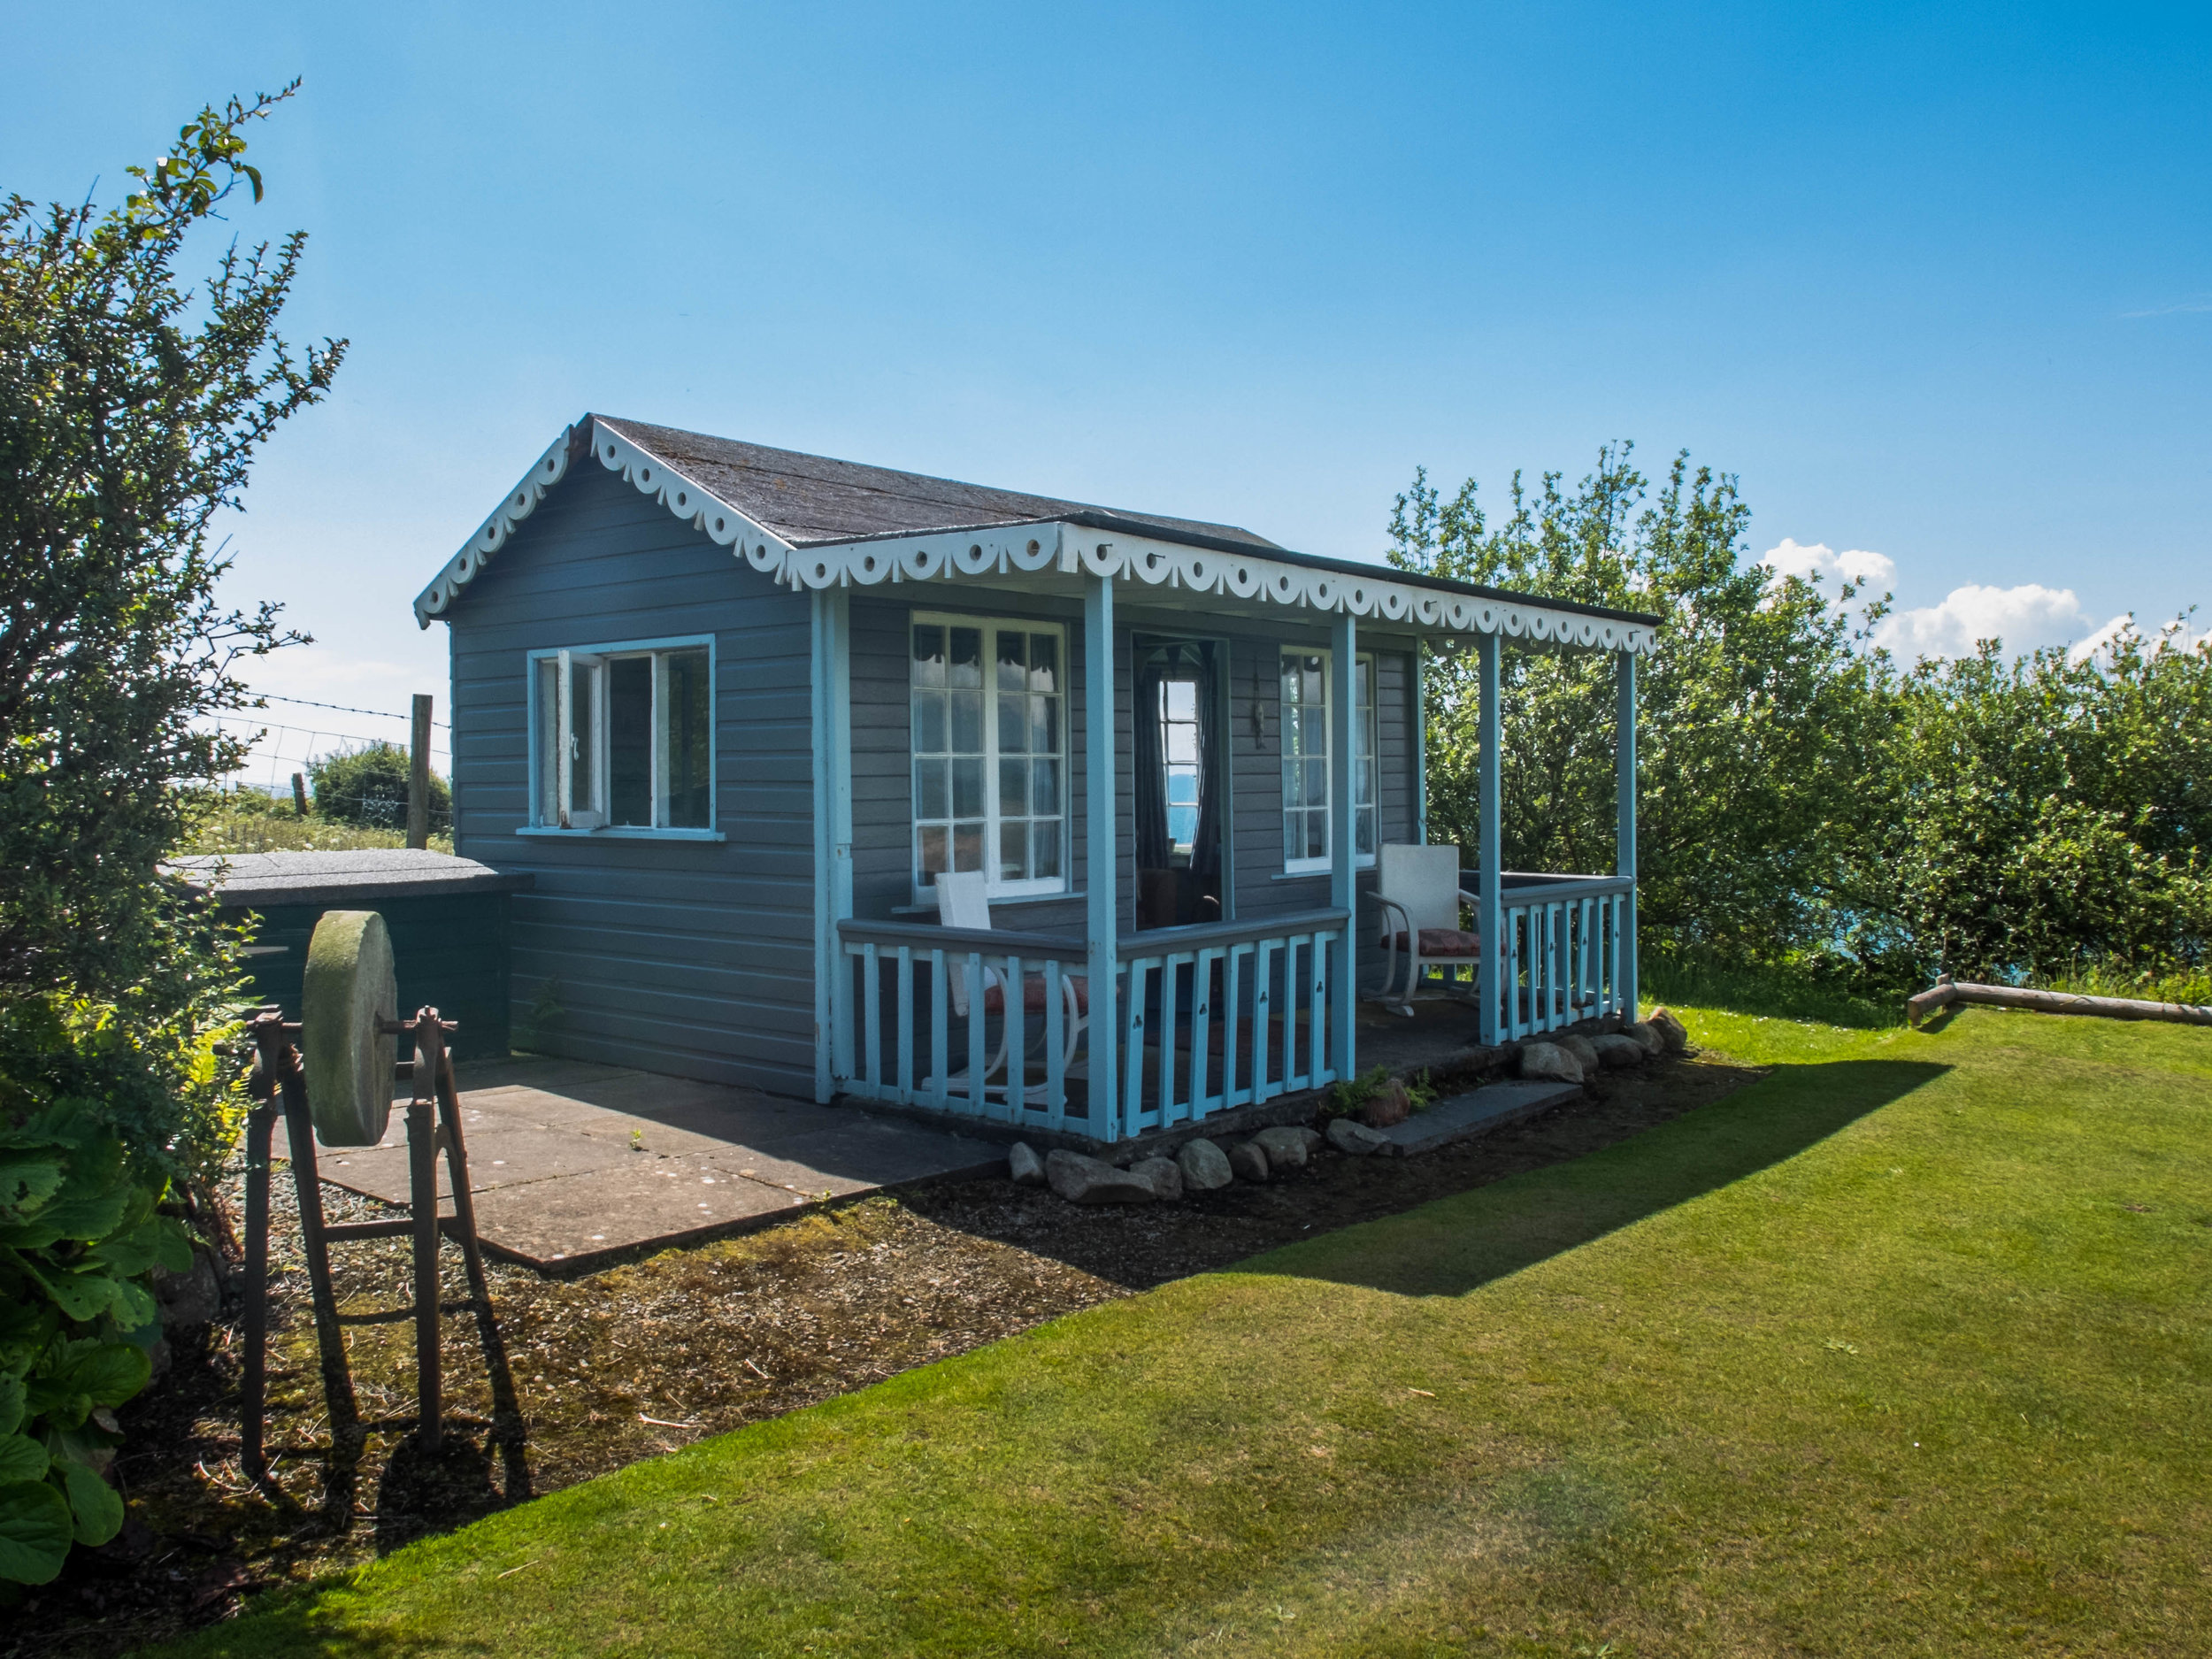 Our private hut with Sea views in the gardens of Hafod Wen, free to use for all guests